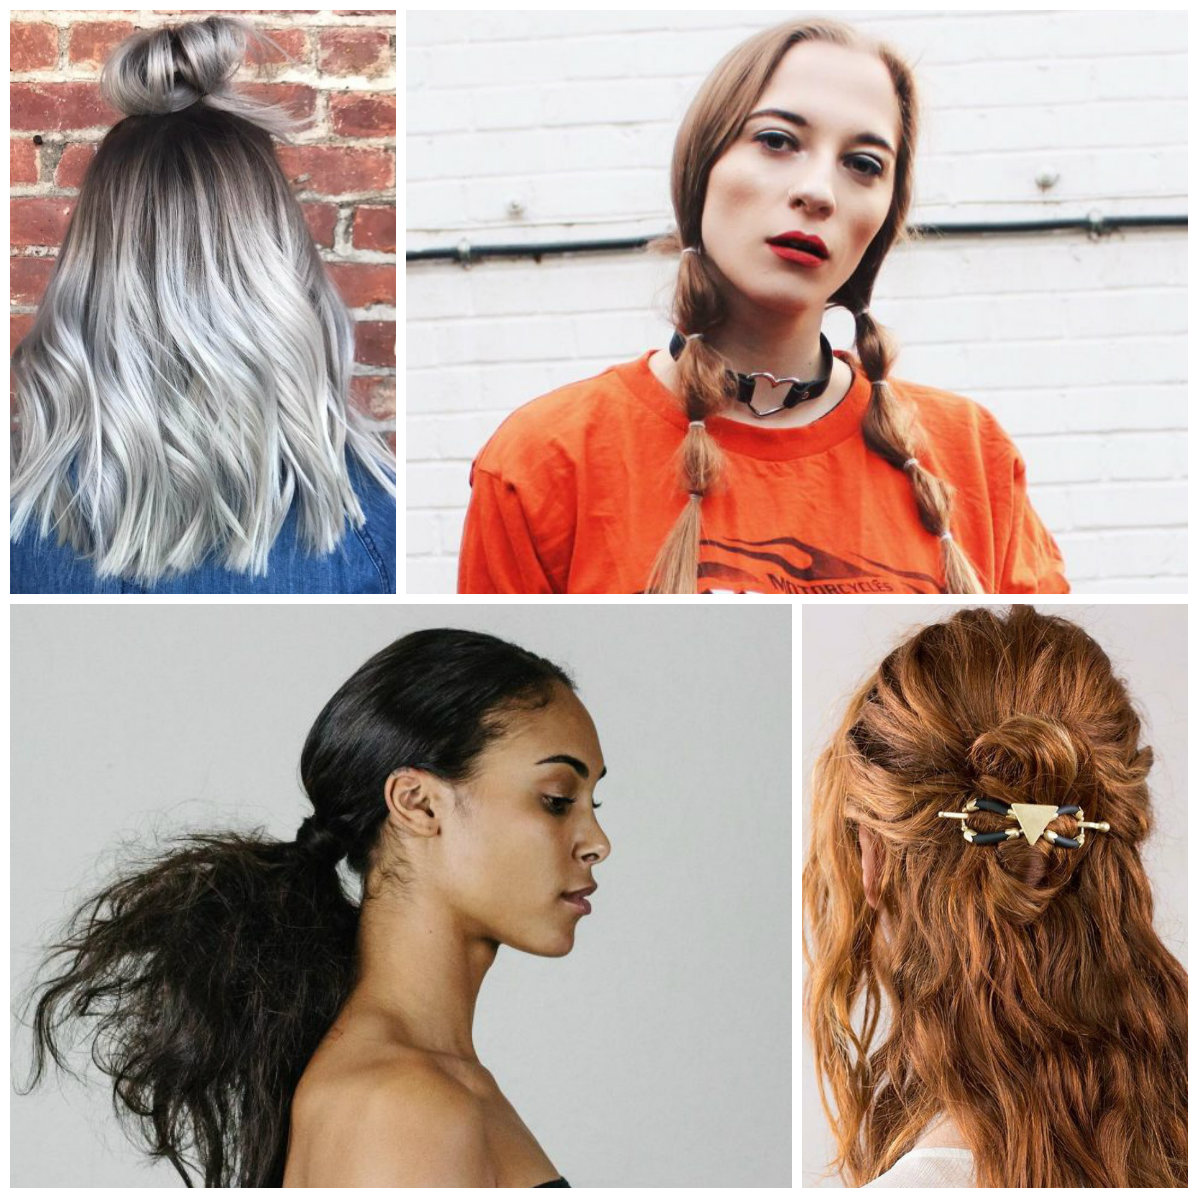 Hairstyles in 2017